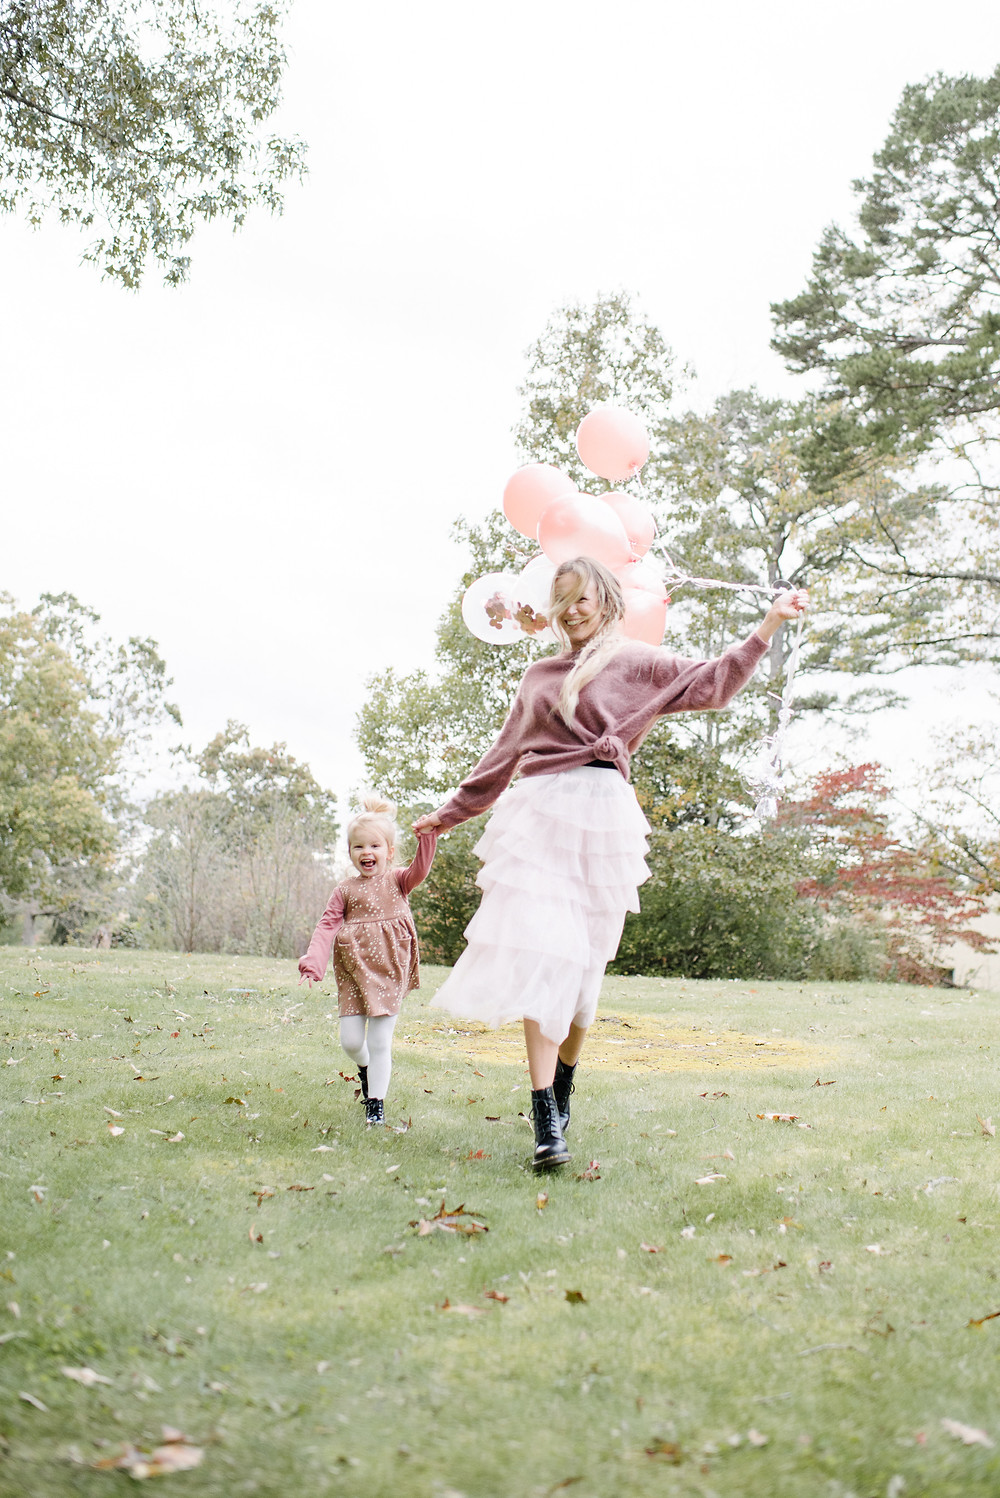 Mom and daughter running with pink balloons.